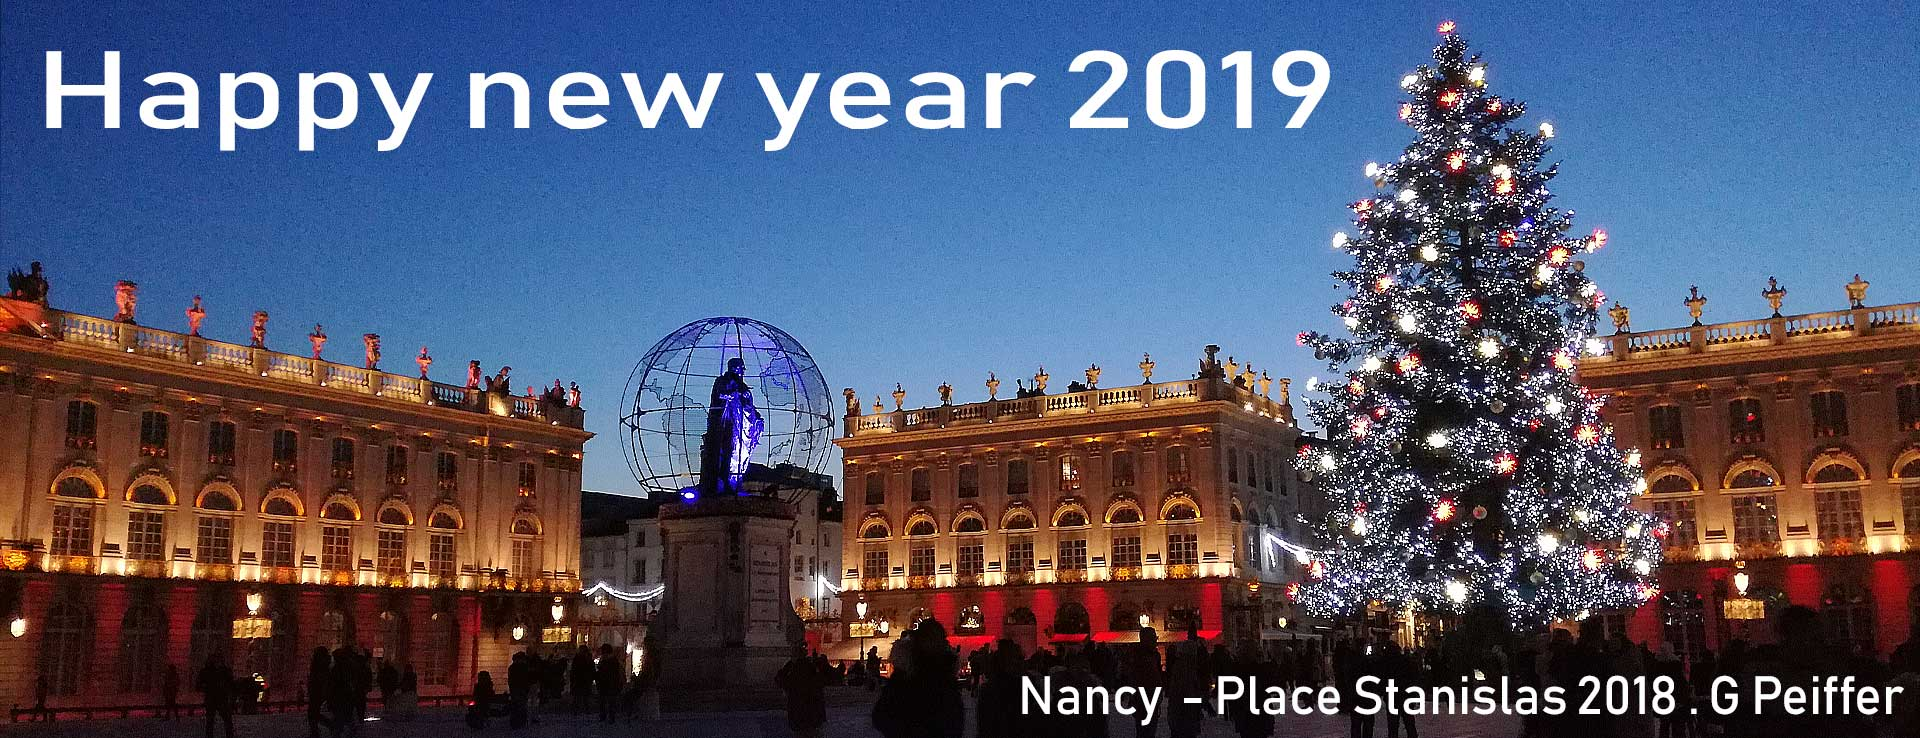 Wishes 2019